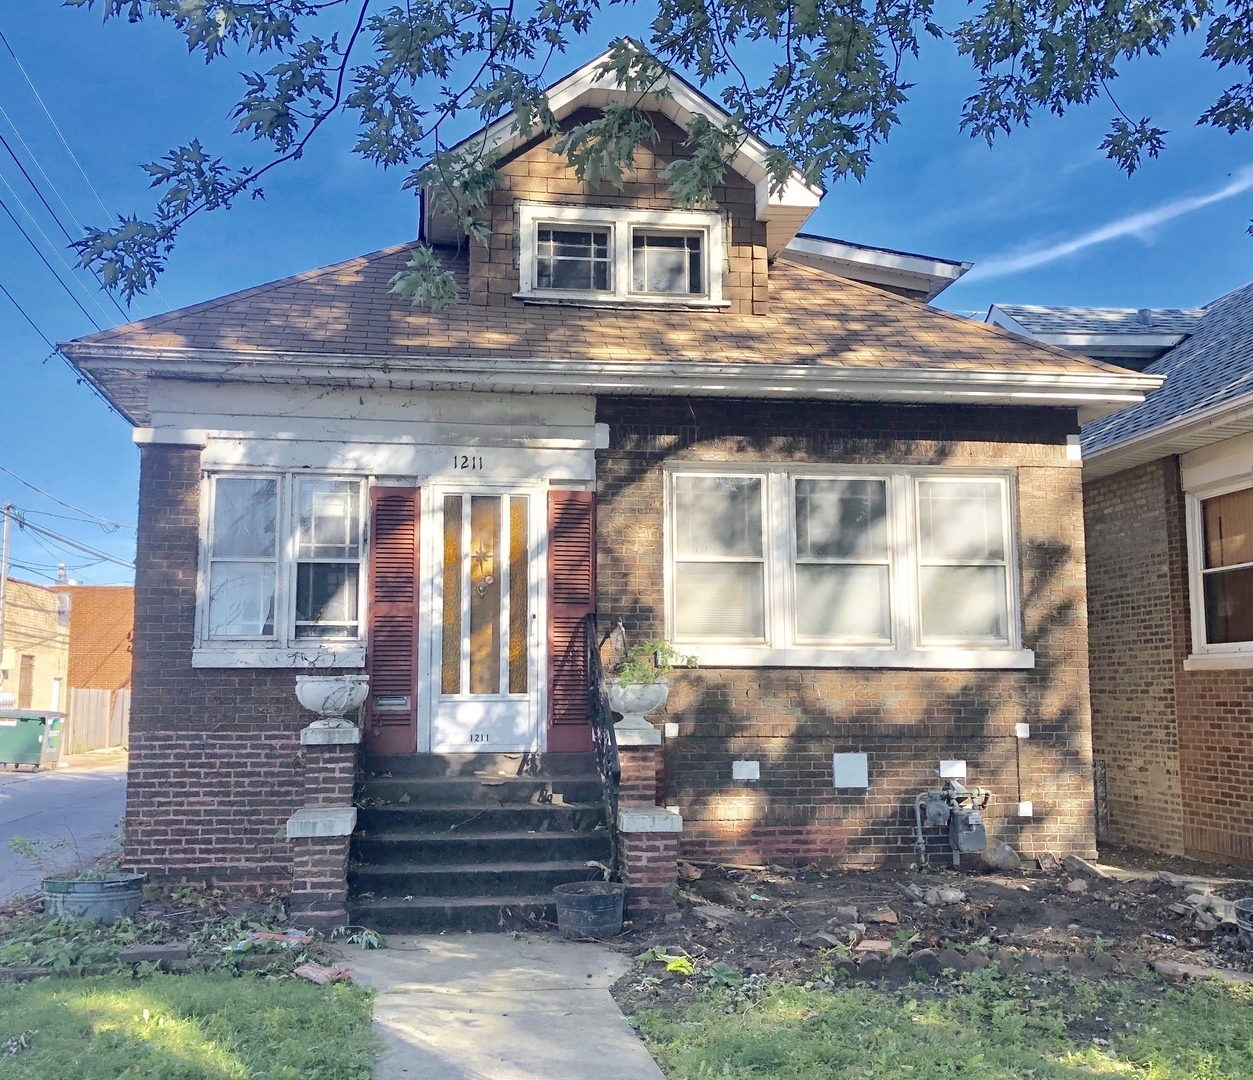 $212K Fix-And-Flip Loan